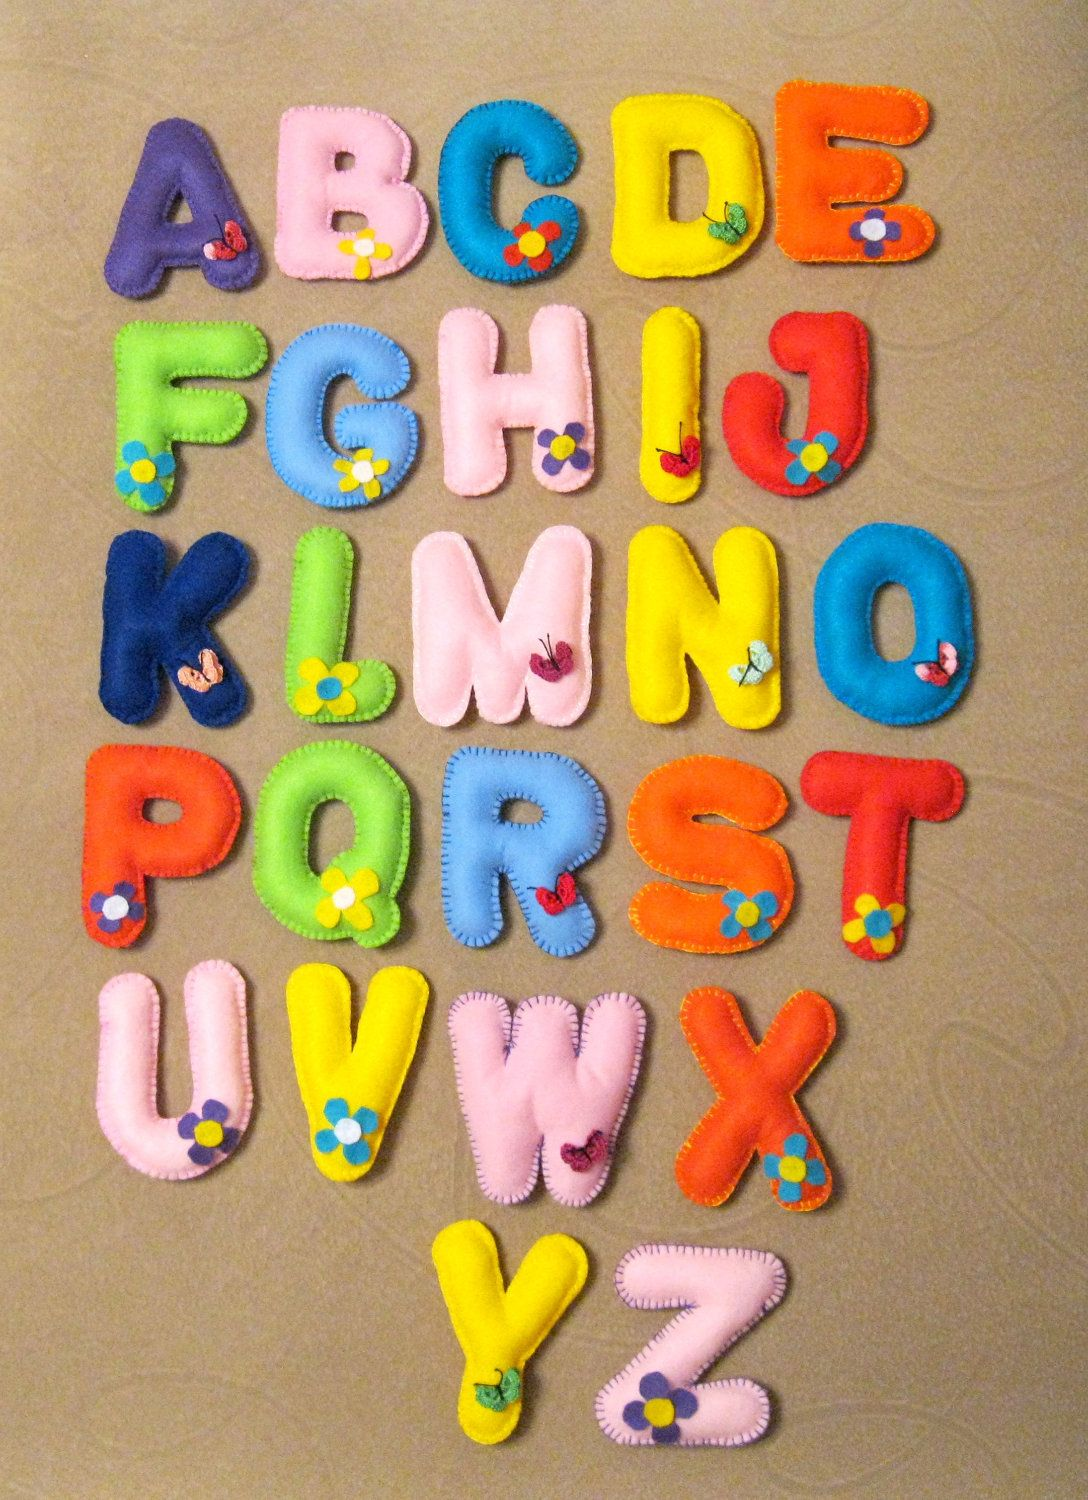 Felt Magnet Alphabet With Corresponding Shapes Appropriate Items